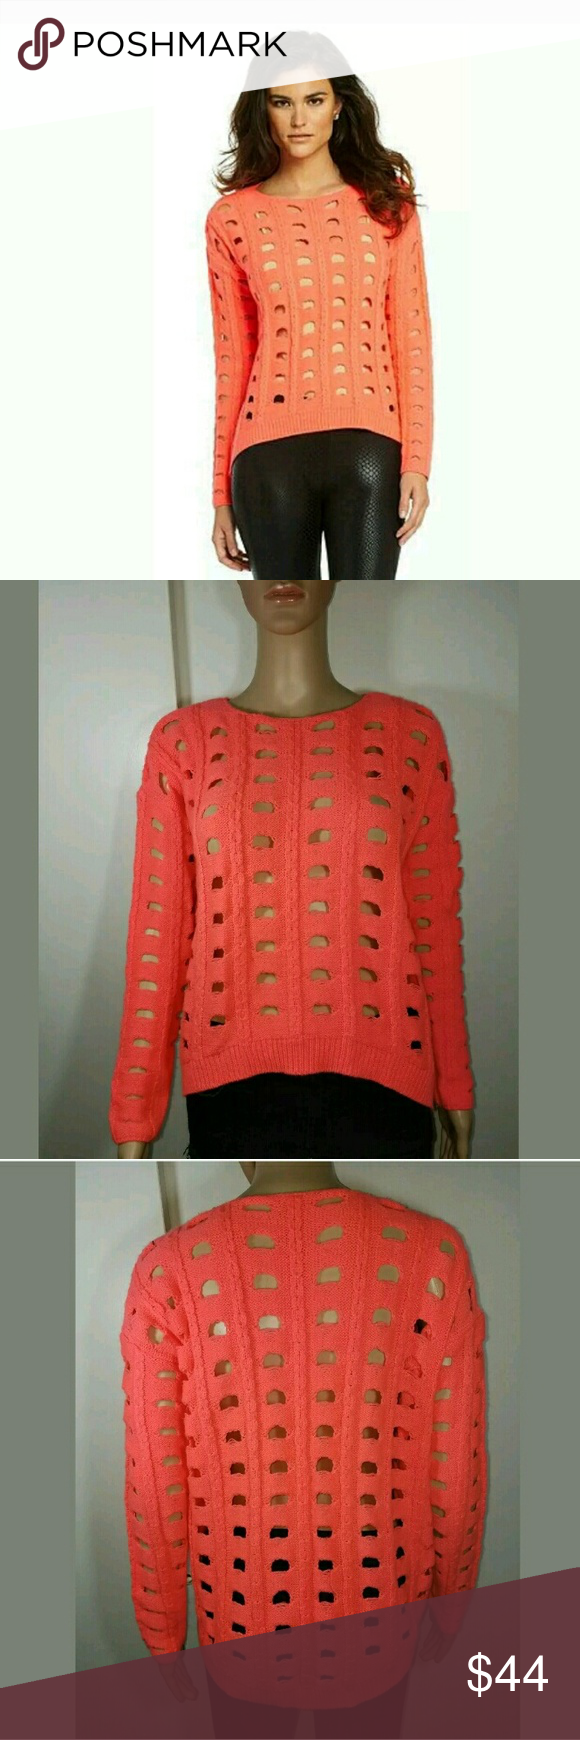 Gianni Bini Cut Out Neon Orange Sweater Cute sweater!!! 24 inches ...